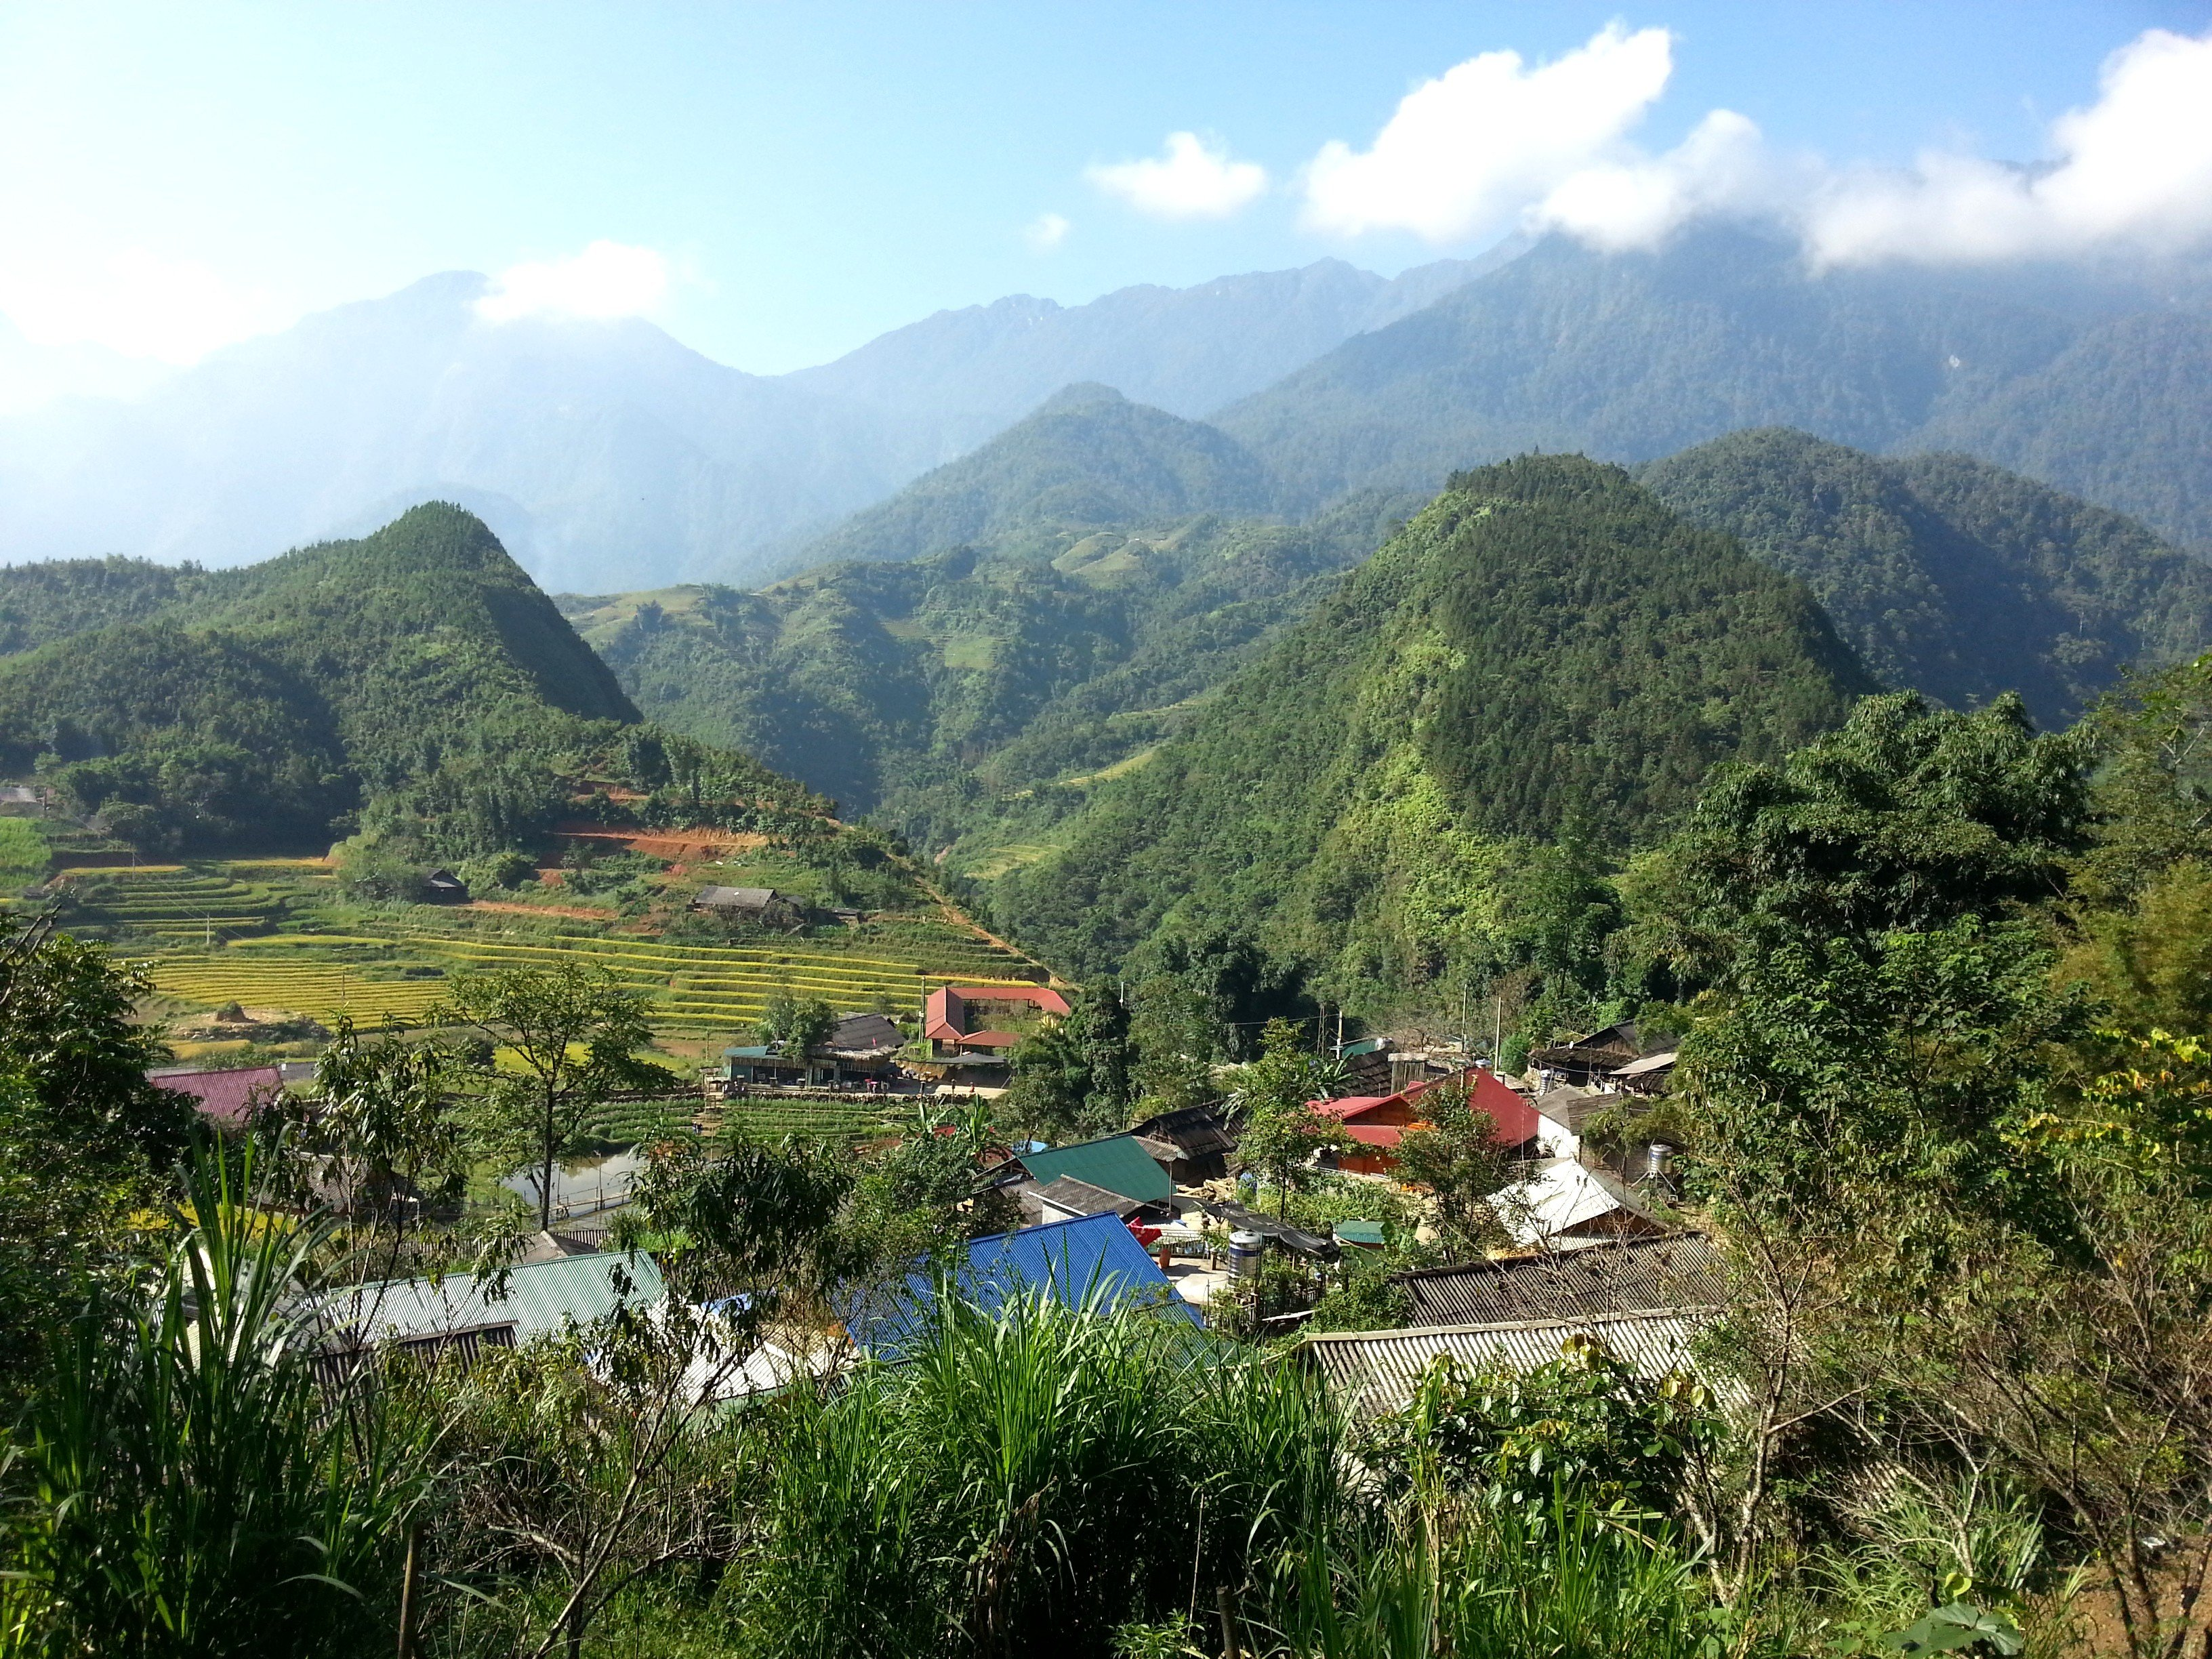 Sapa is famous for its scenery